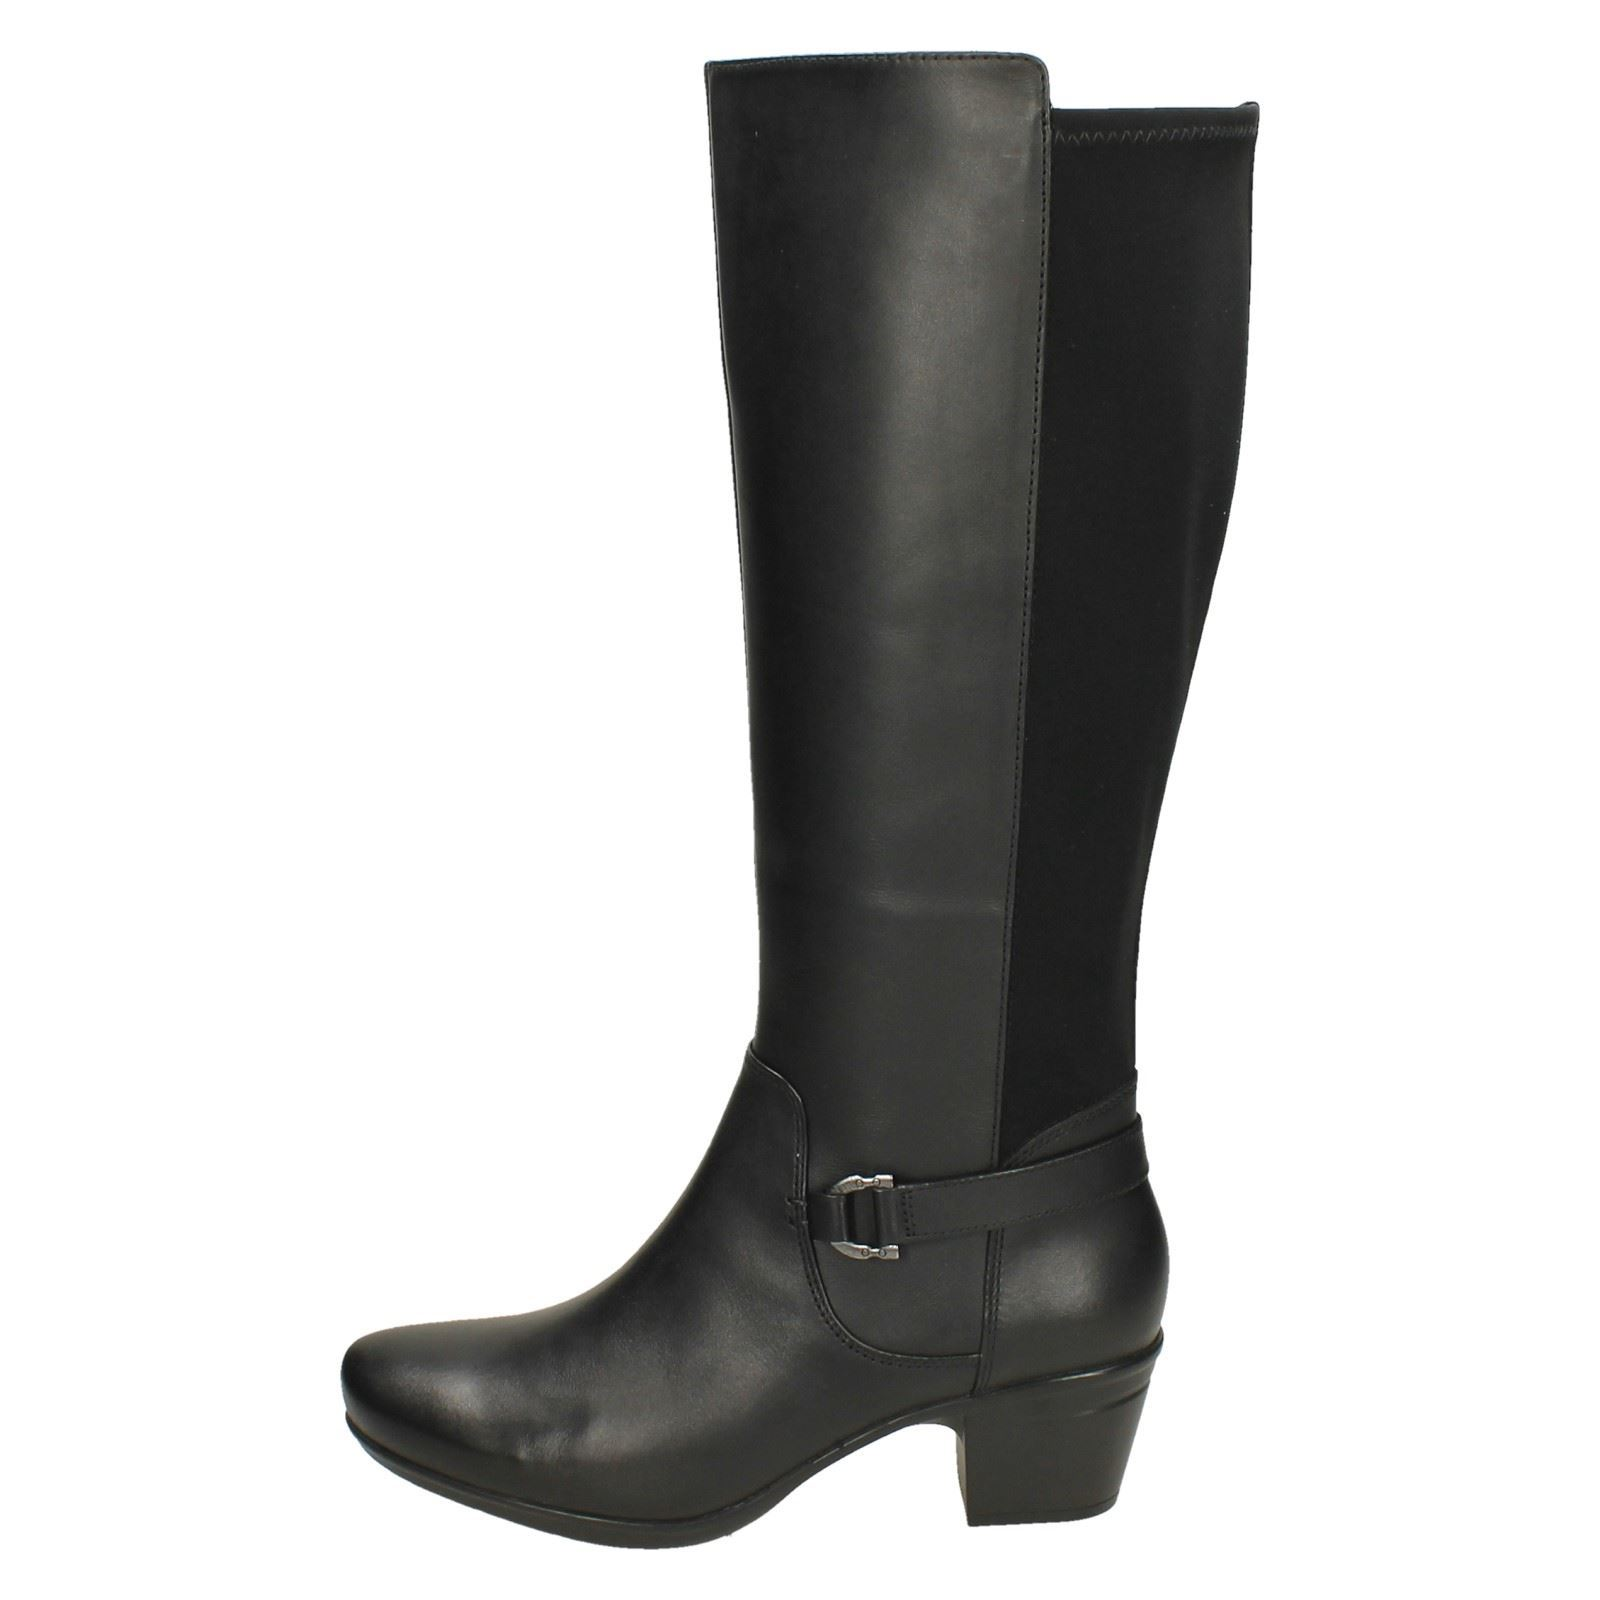 10204f33fc5 Ladies-Clarks-Heeled-Knee-High-Boots-Emslie-March thumbnail